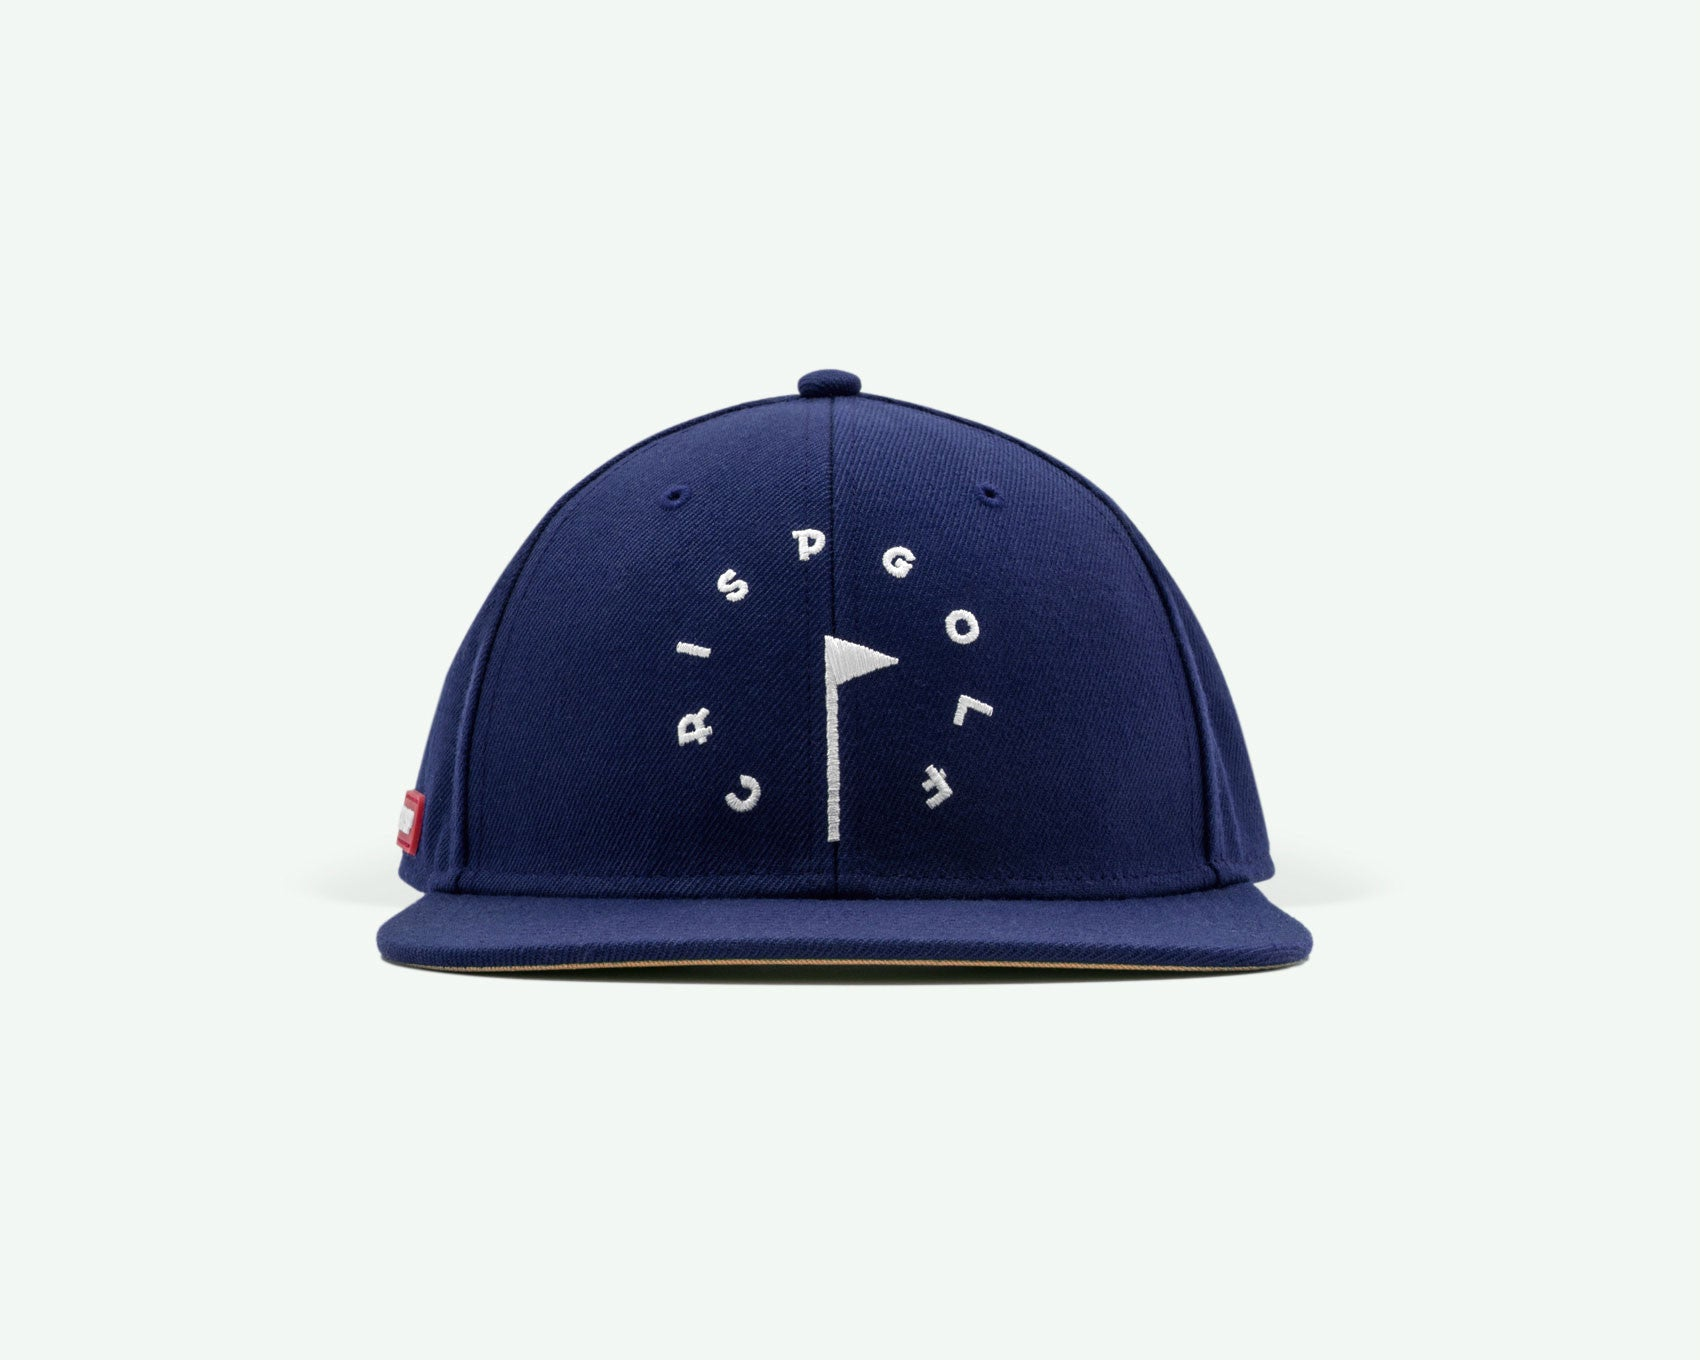 101 series navy blue coloured structured 6-panel golf cap with premium wool blend fabric, leather strap and branded white buckle.